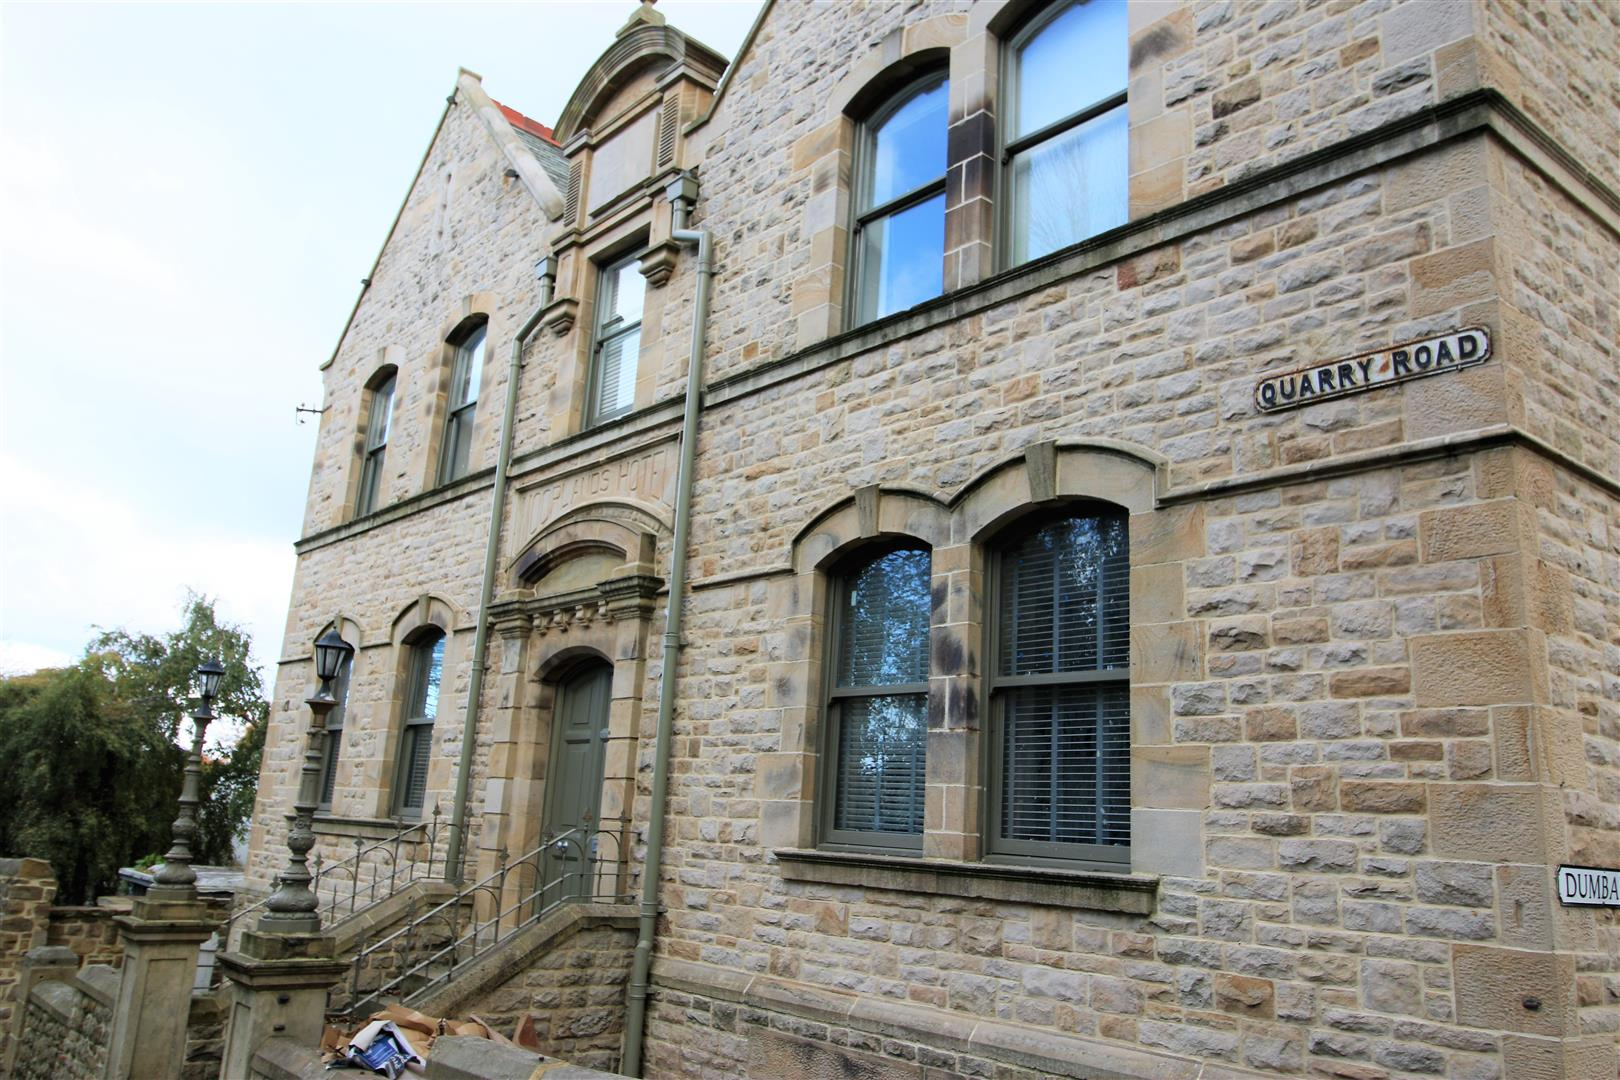 Studio 4 Moorlands Heights, Quarry Road, Lancaster, LA1 3BY